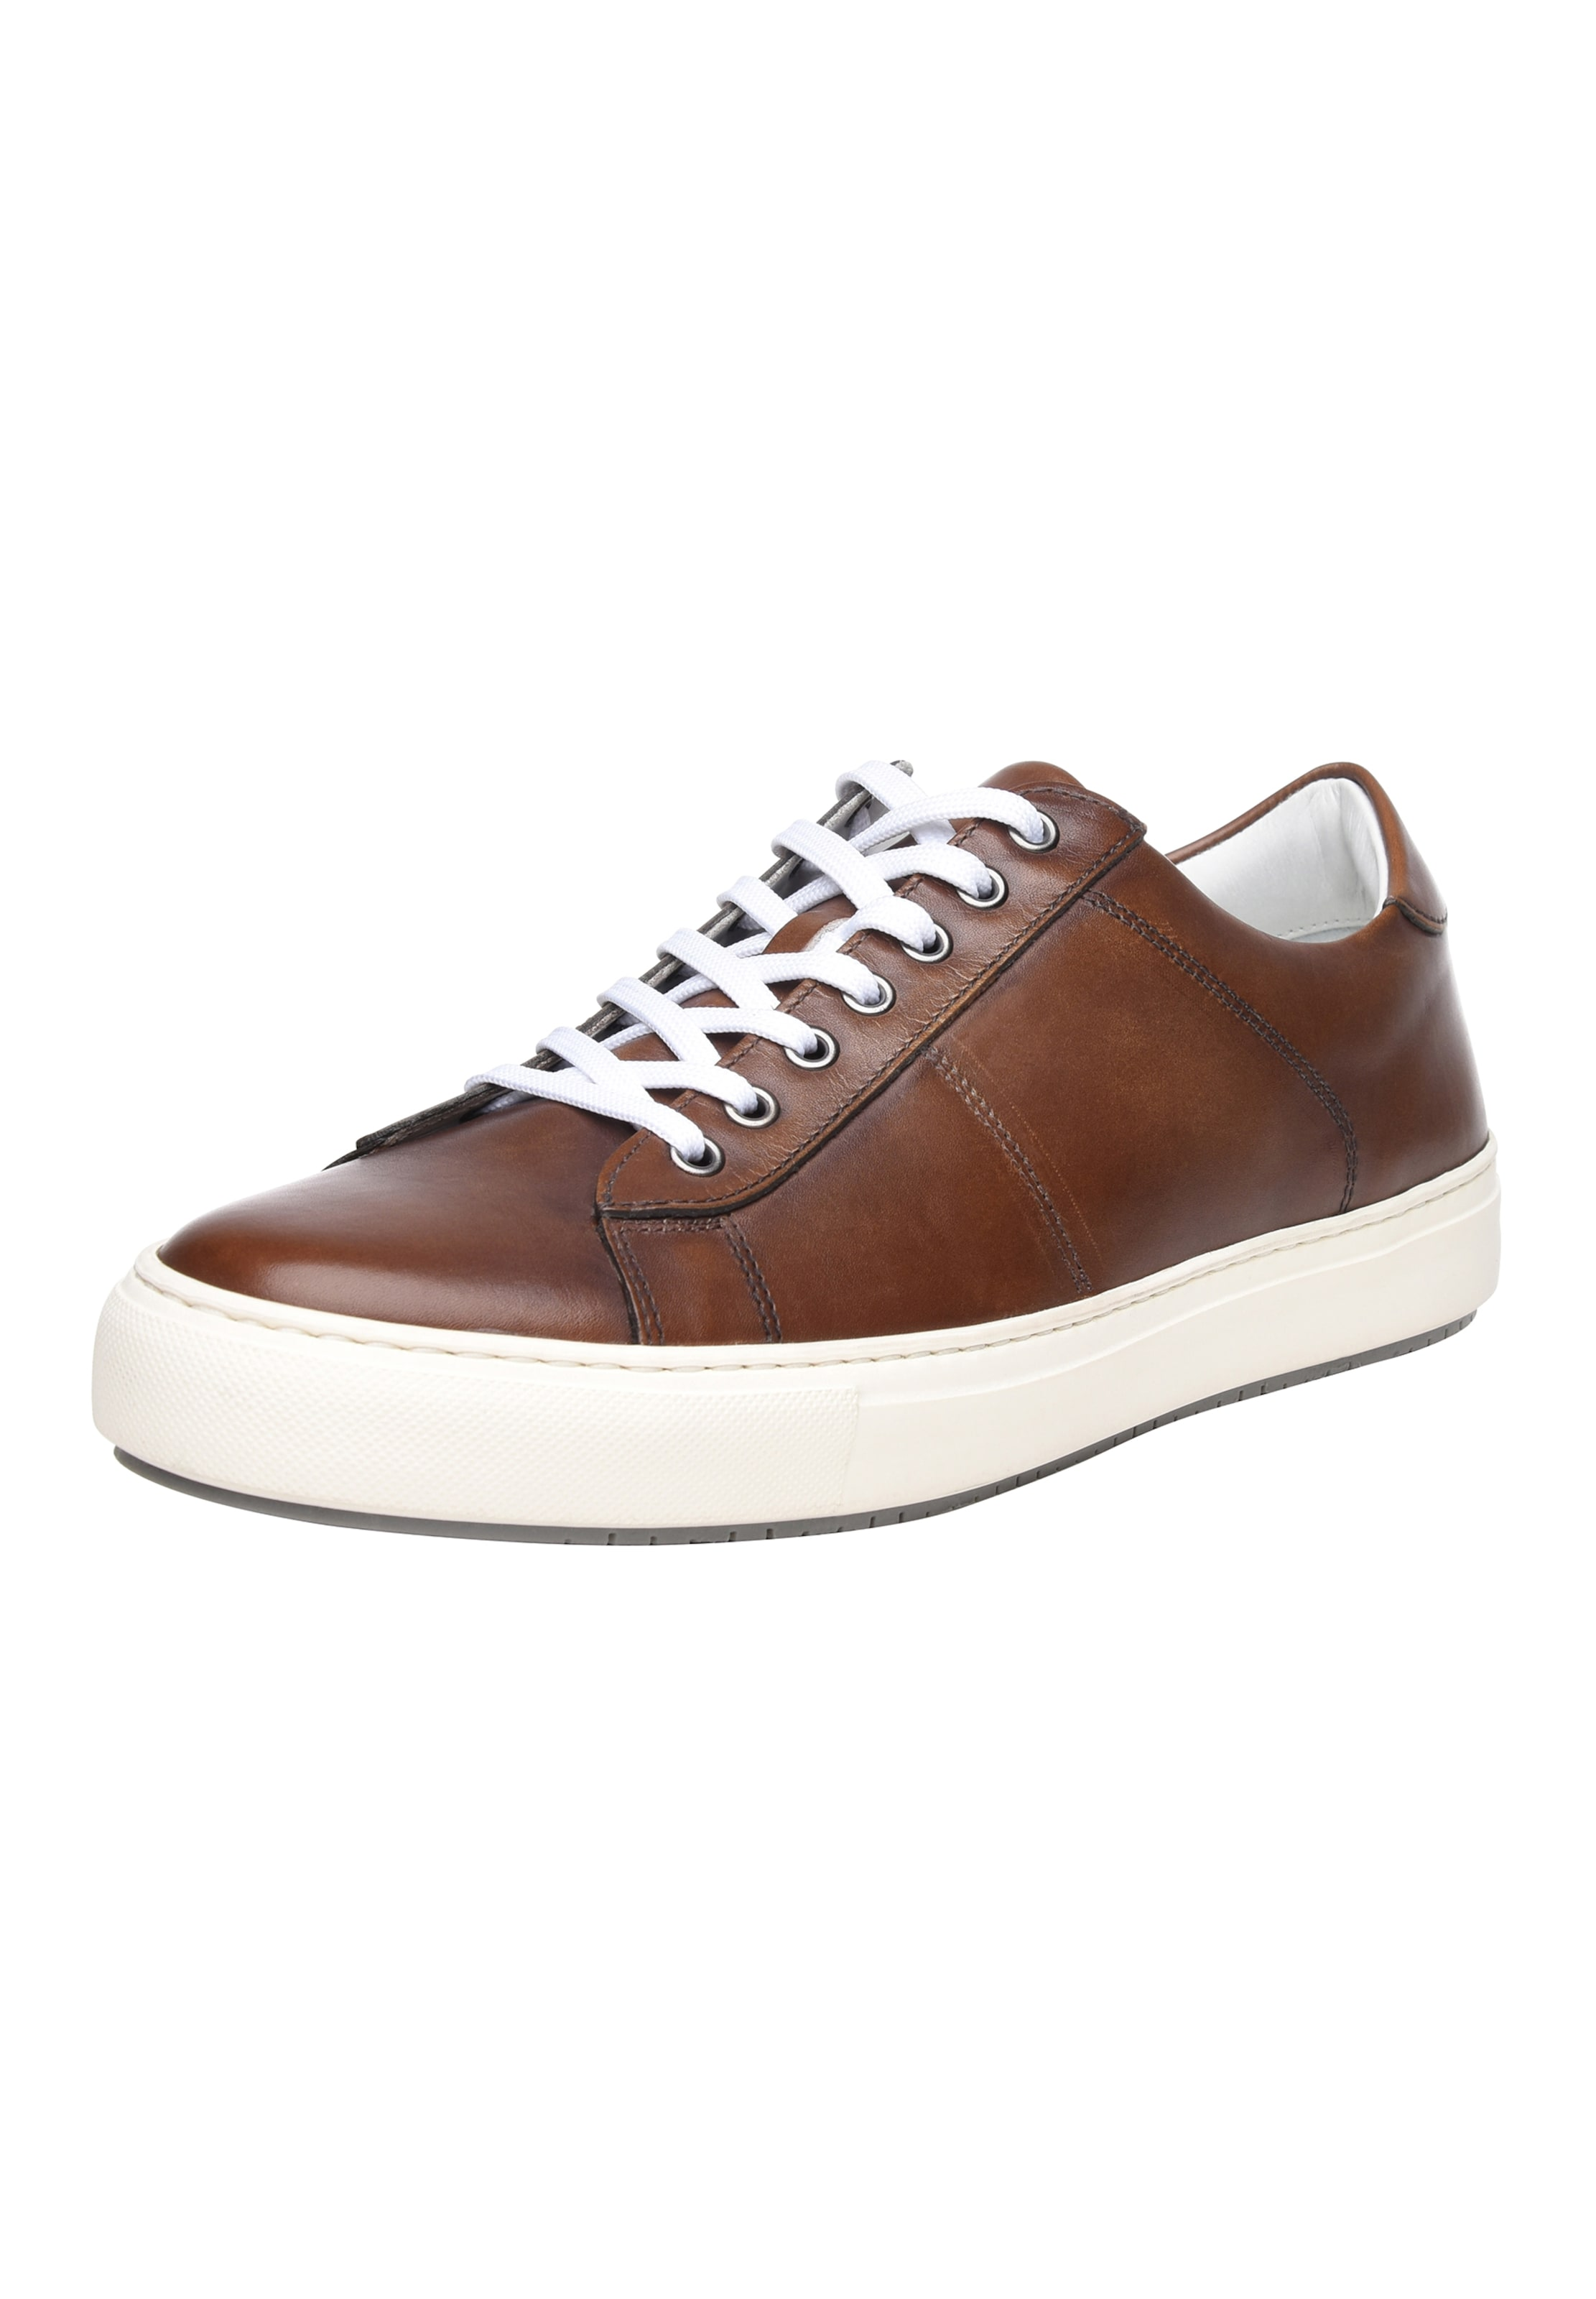 SHOEPASSION Sneaker  No. 341 UL